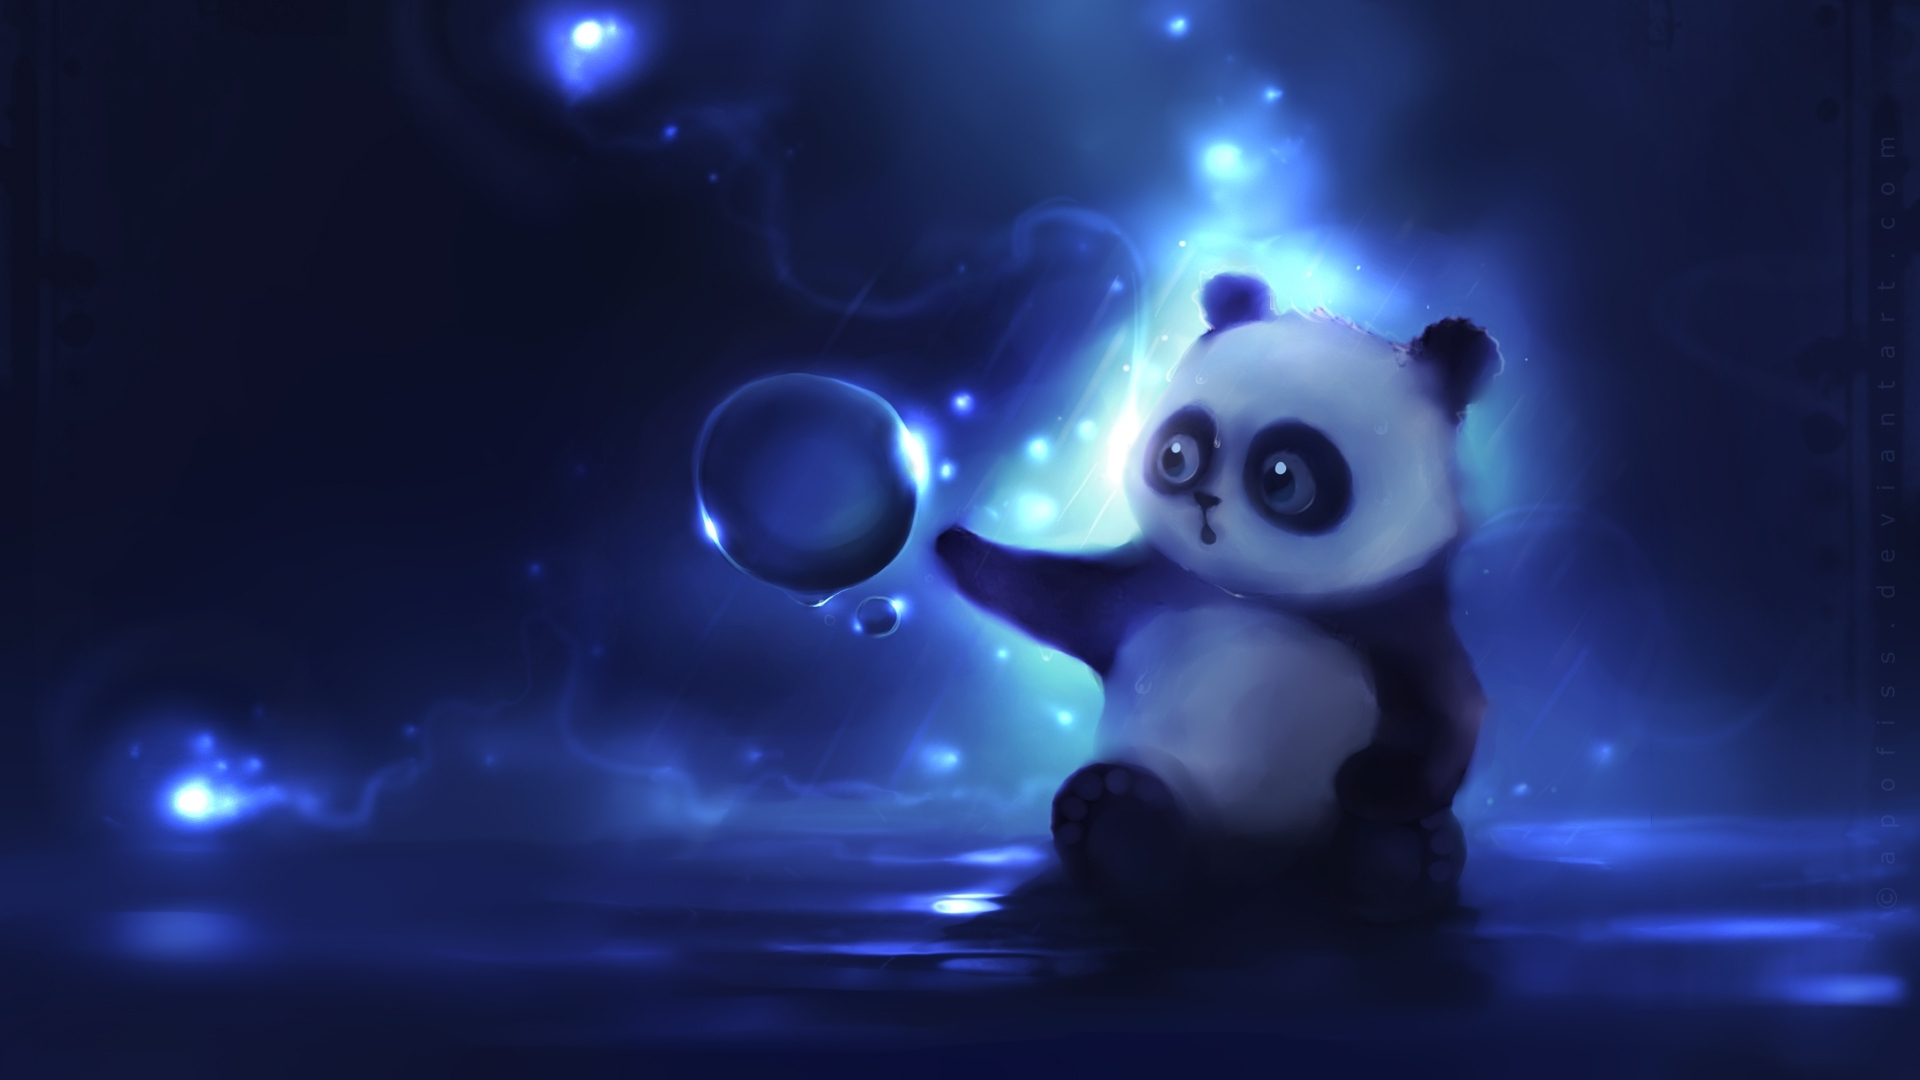 38685 download wallpaper Animals, Pictures, Pandas screensavers and pictures for free